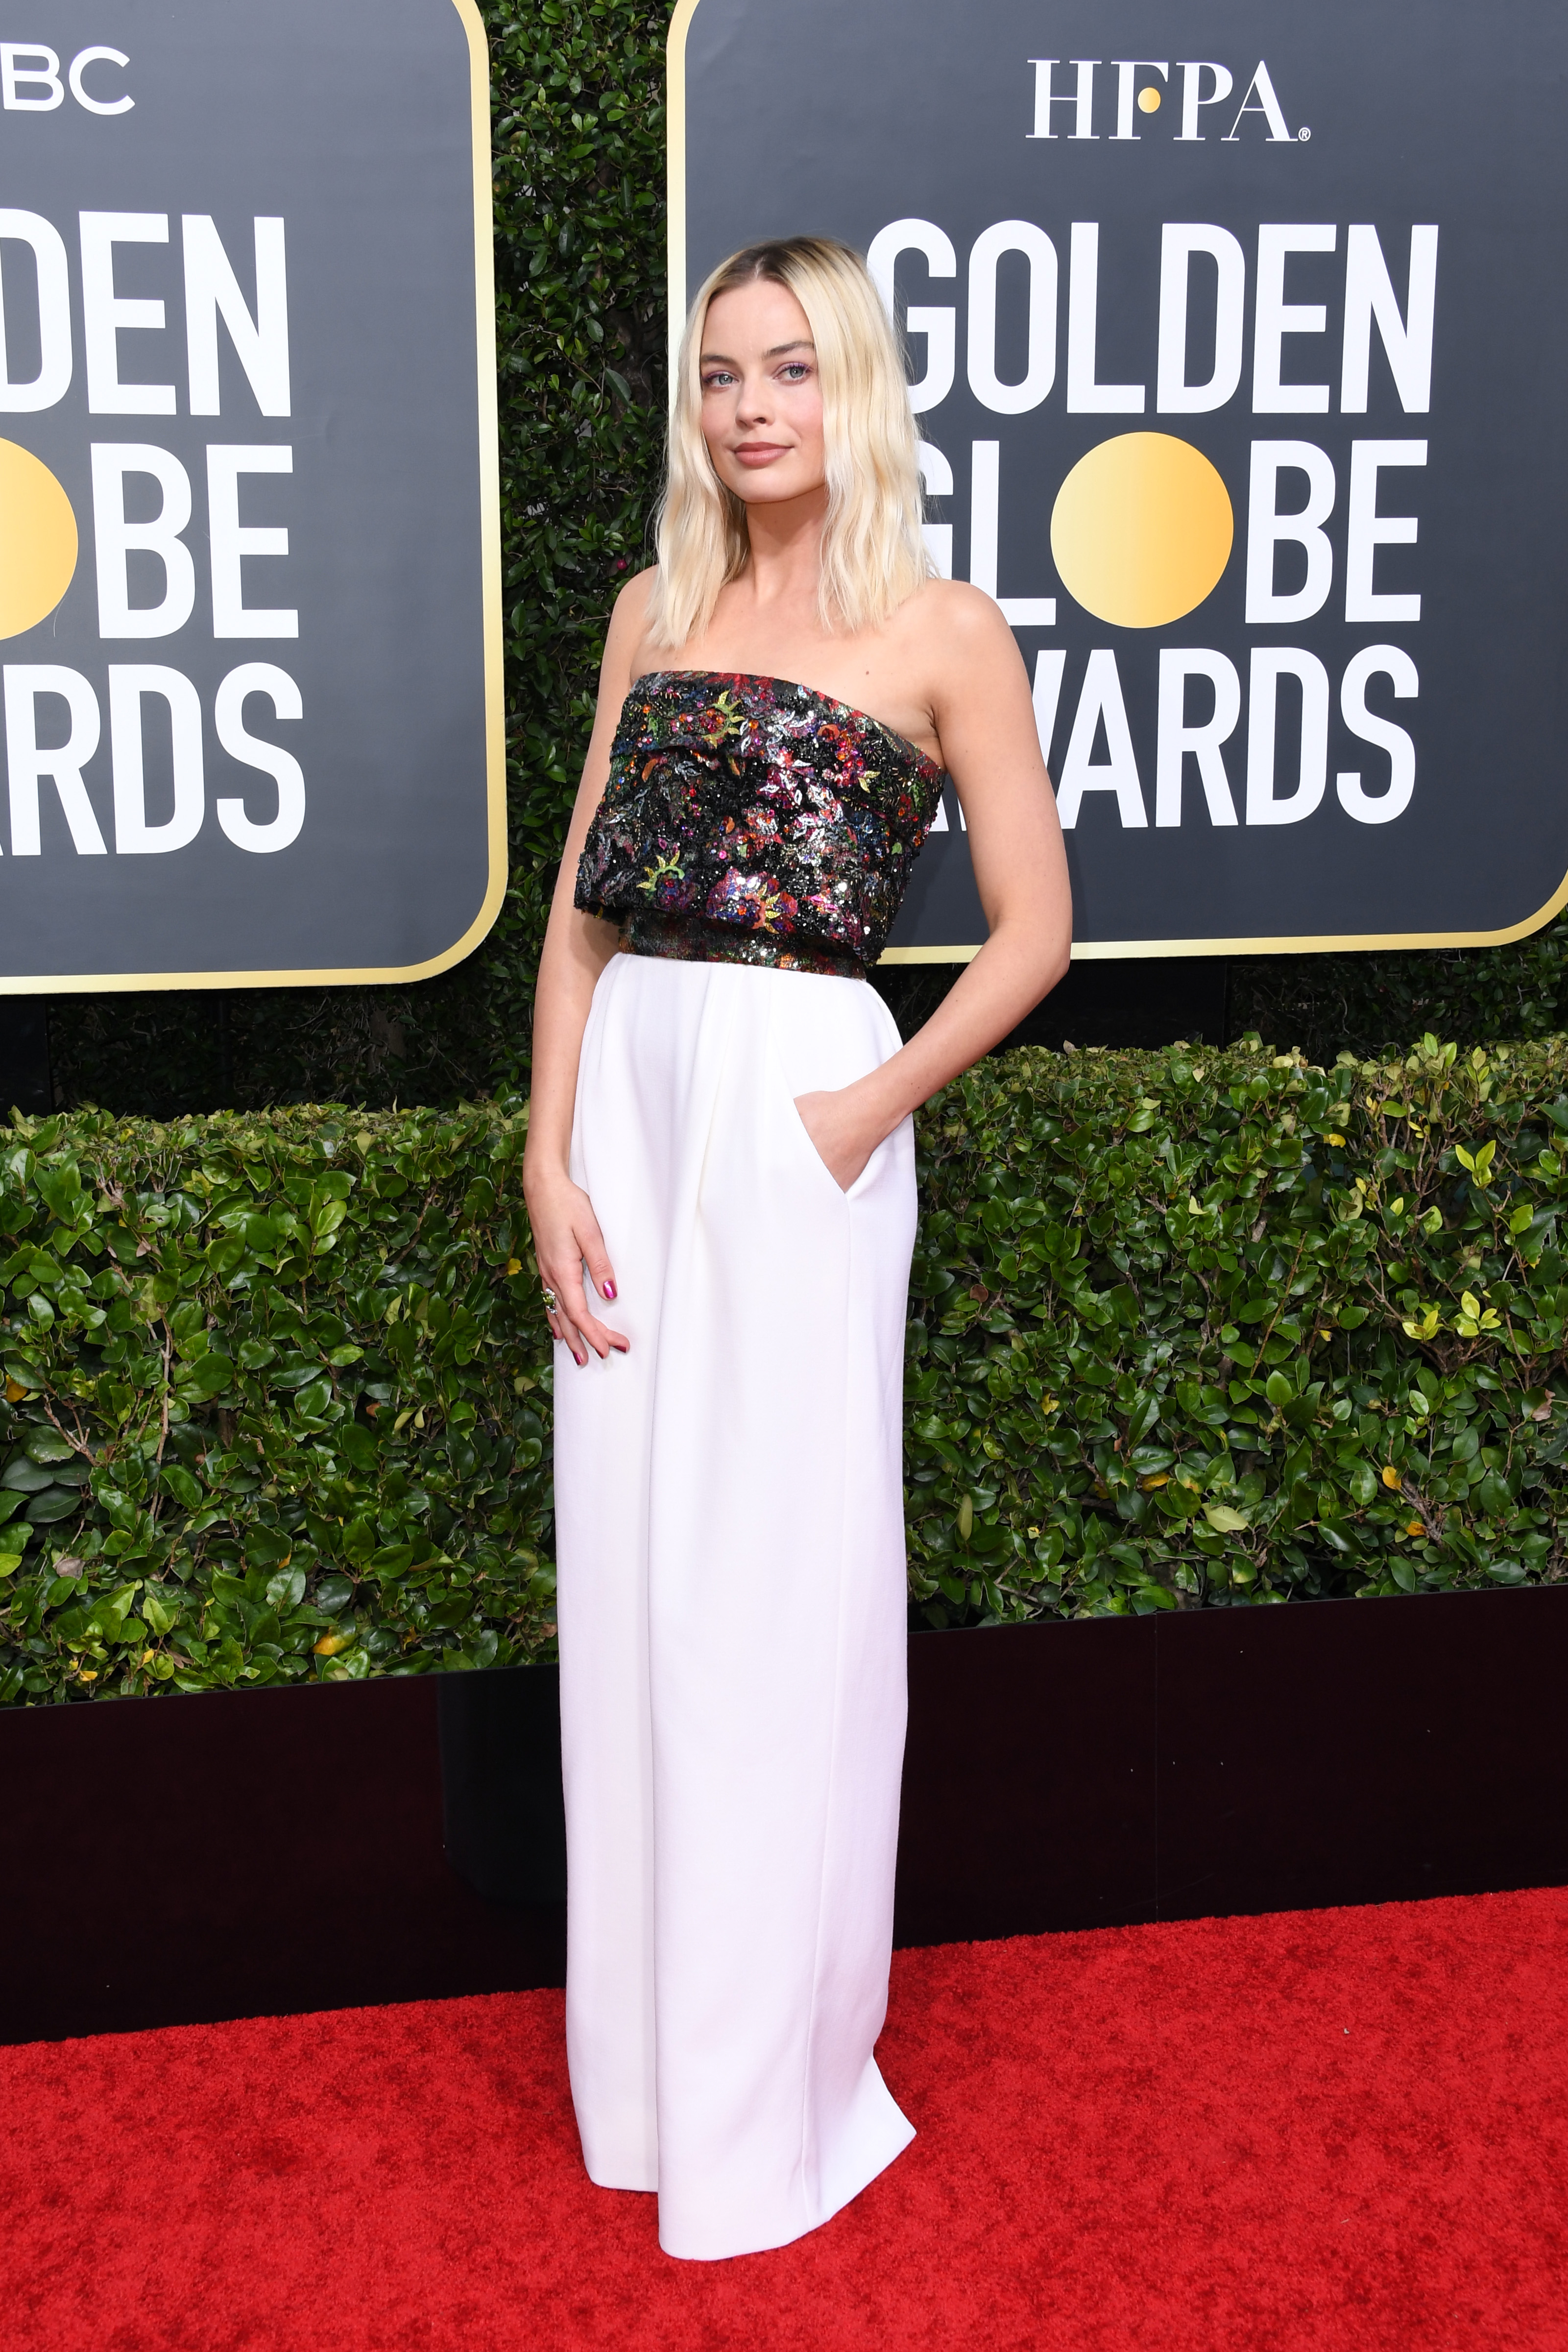 BEVERLY HILLS, CALIFORNIA - JANUARY 05: Margot Robbie attends the 77th Annual Golden Globe Awards at The Beverly Hilton Hotel on January 05, 2020 in Beverly Hills, California. (Photo by Jon Kopaloff/Getty Images)